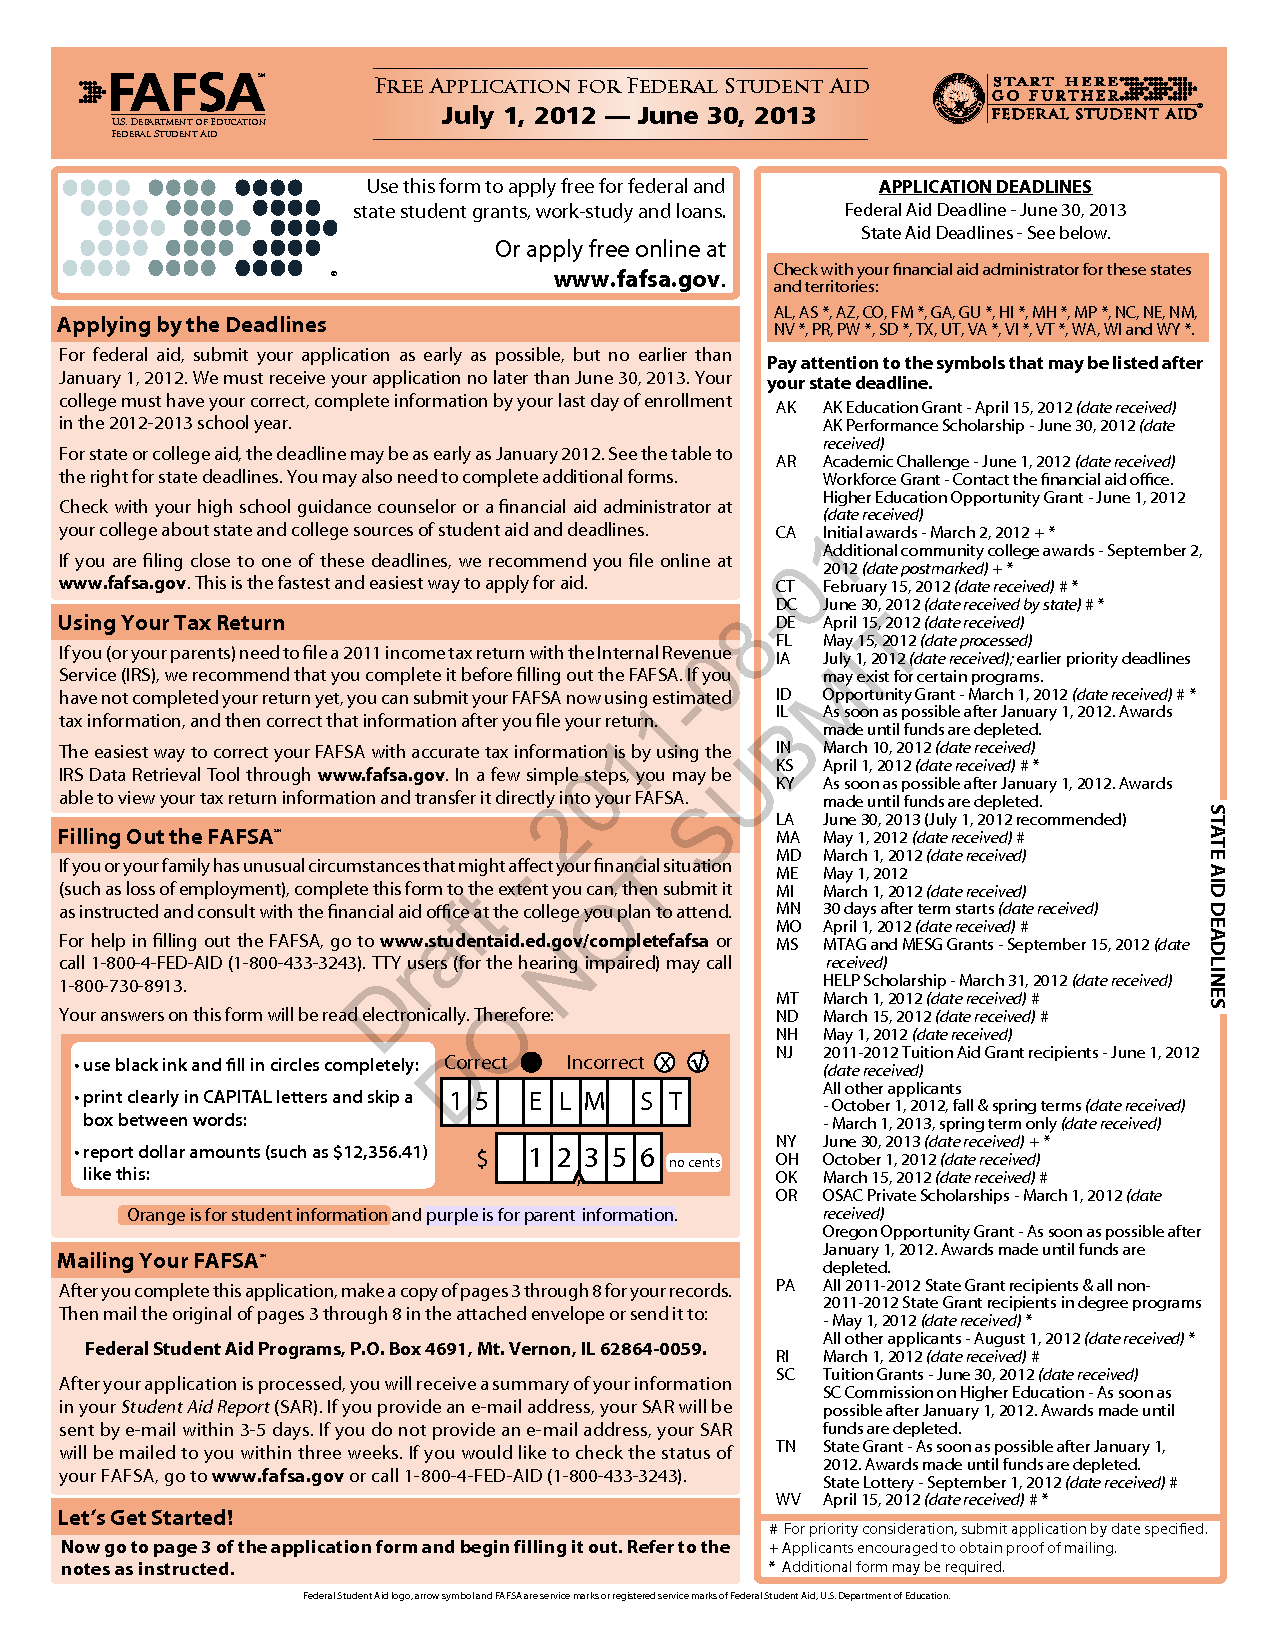 Fafsa Deadlines Printables Fafsa Worksheet Ronleyba Worksheets Printables